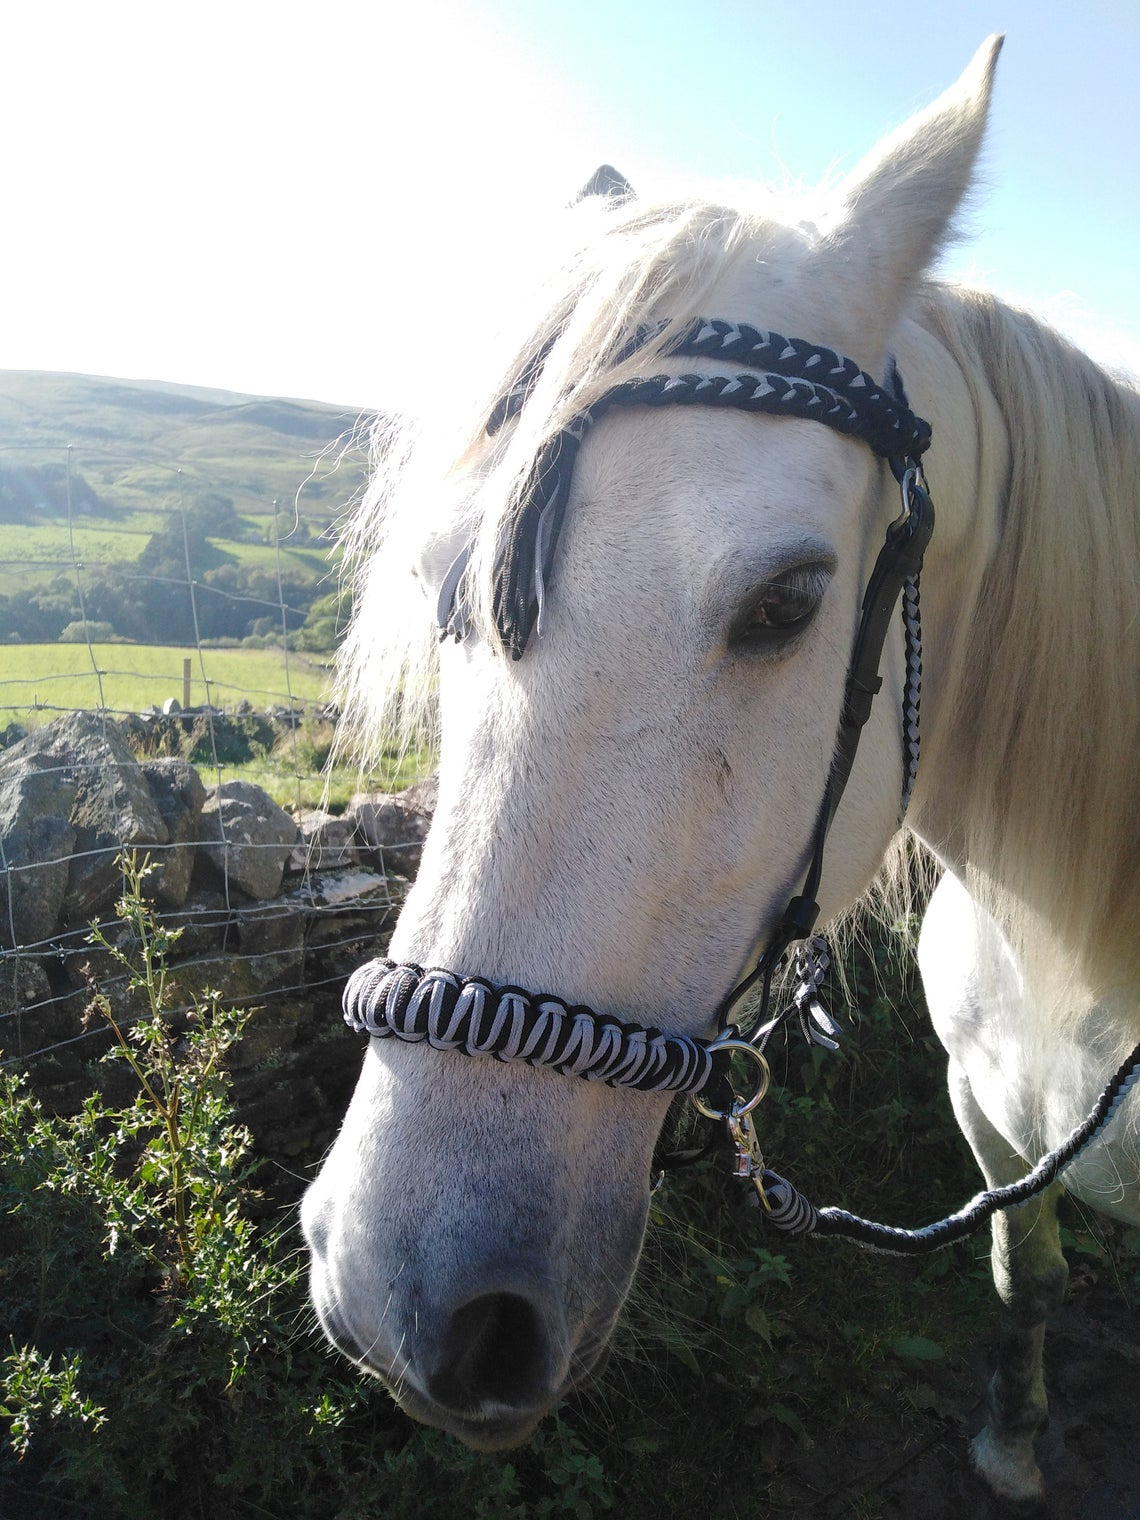 BuckYou Perfect Fit Fully Adjustable Black and Silver Rope and Biothane Sidepull bitless Bridle and reins!